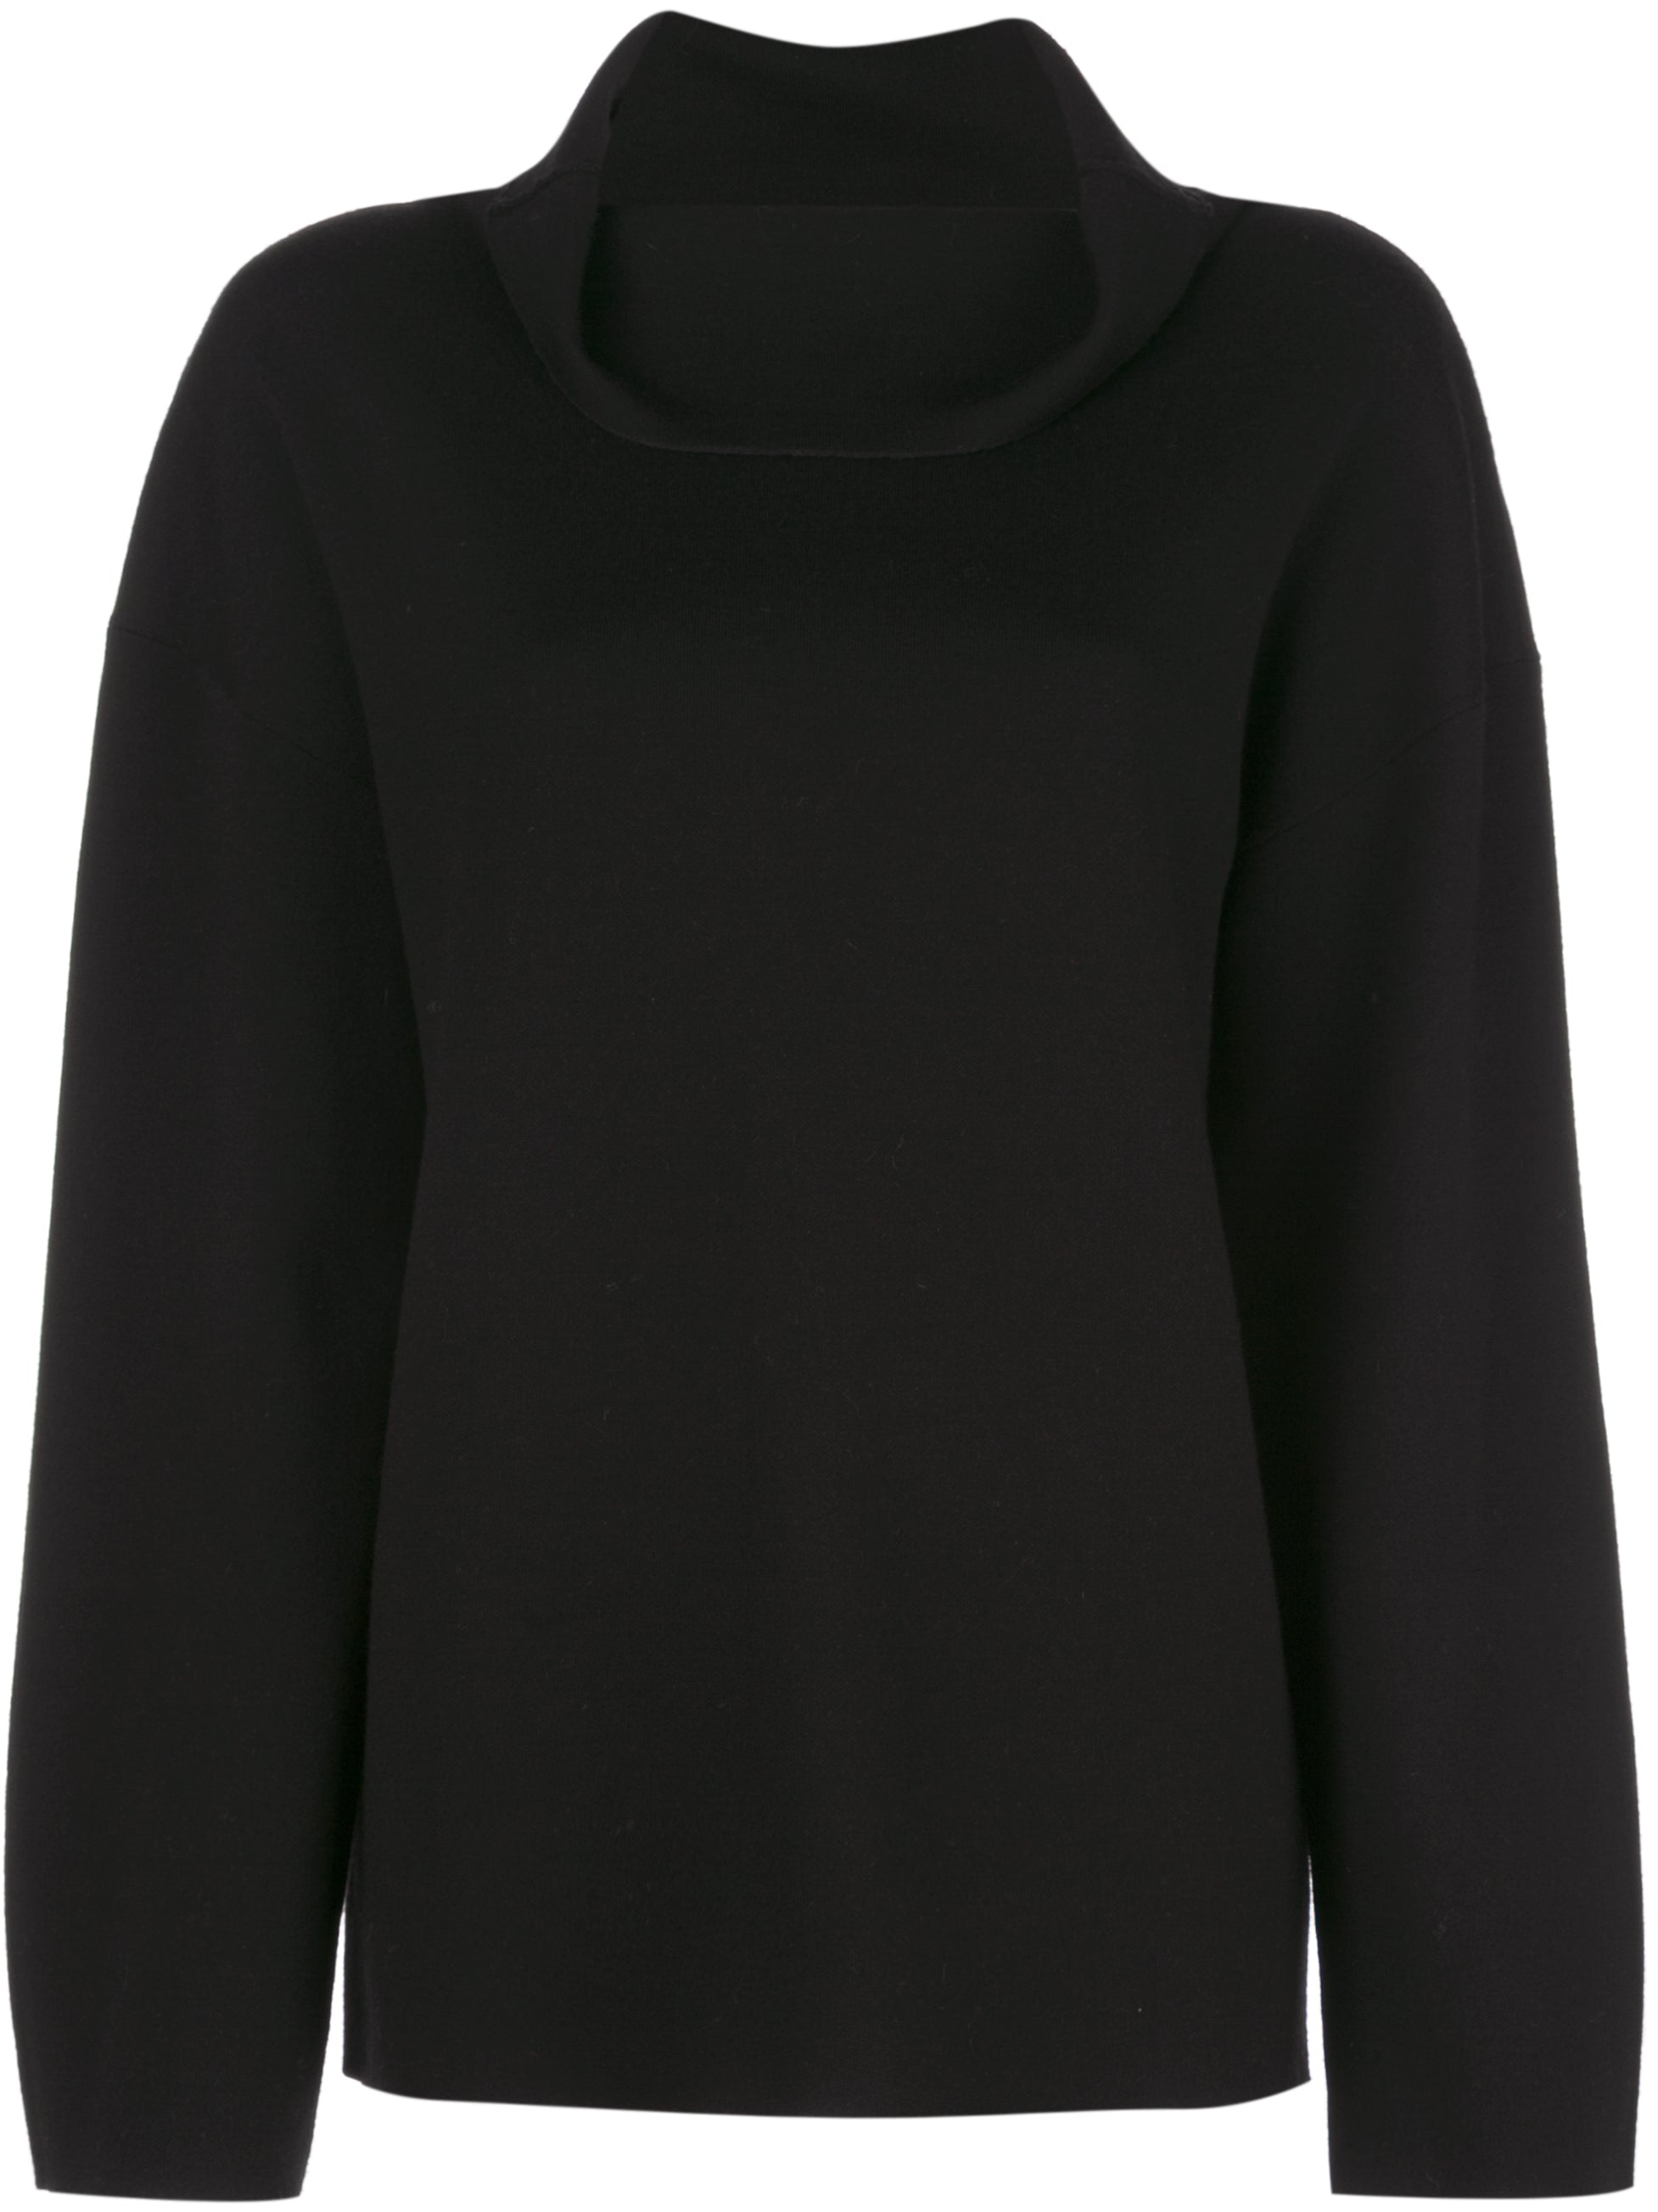 DOUBLE FACE MERINO WOOL TURTLENECK